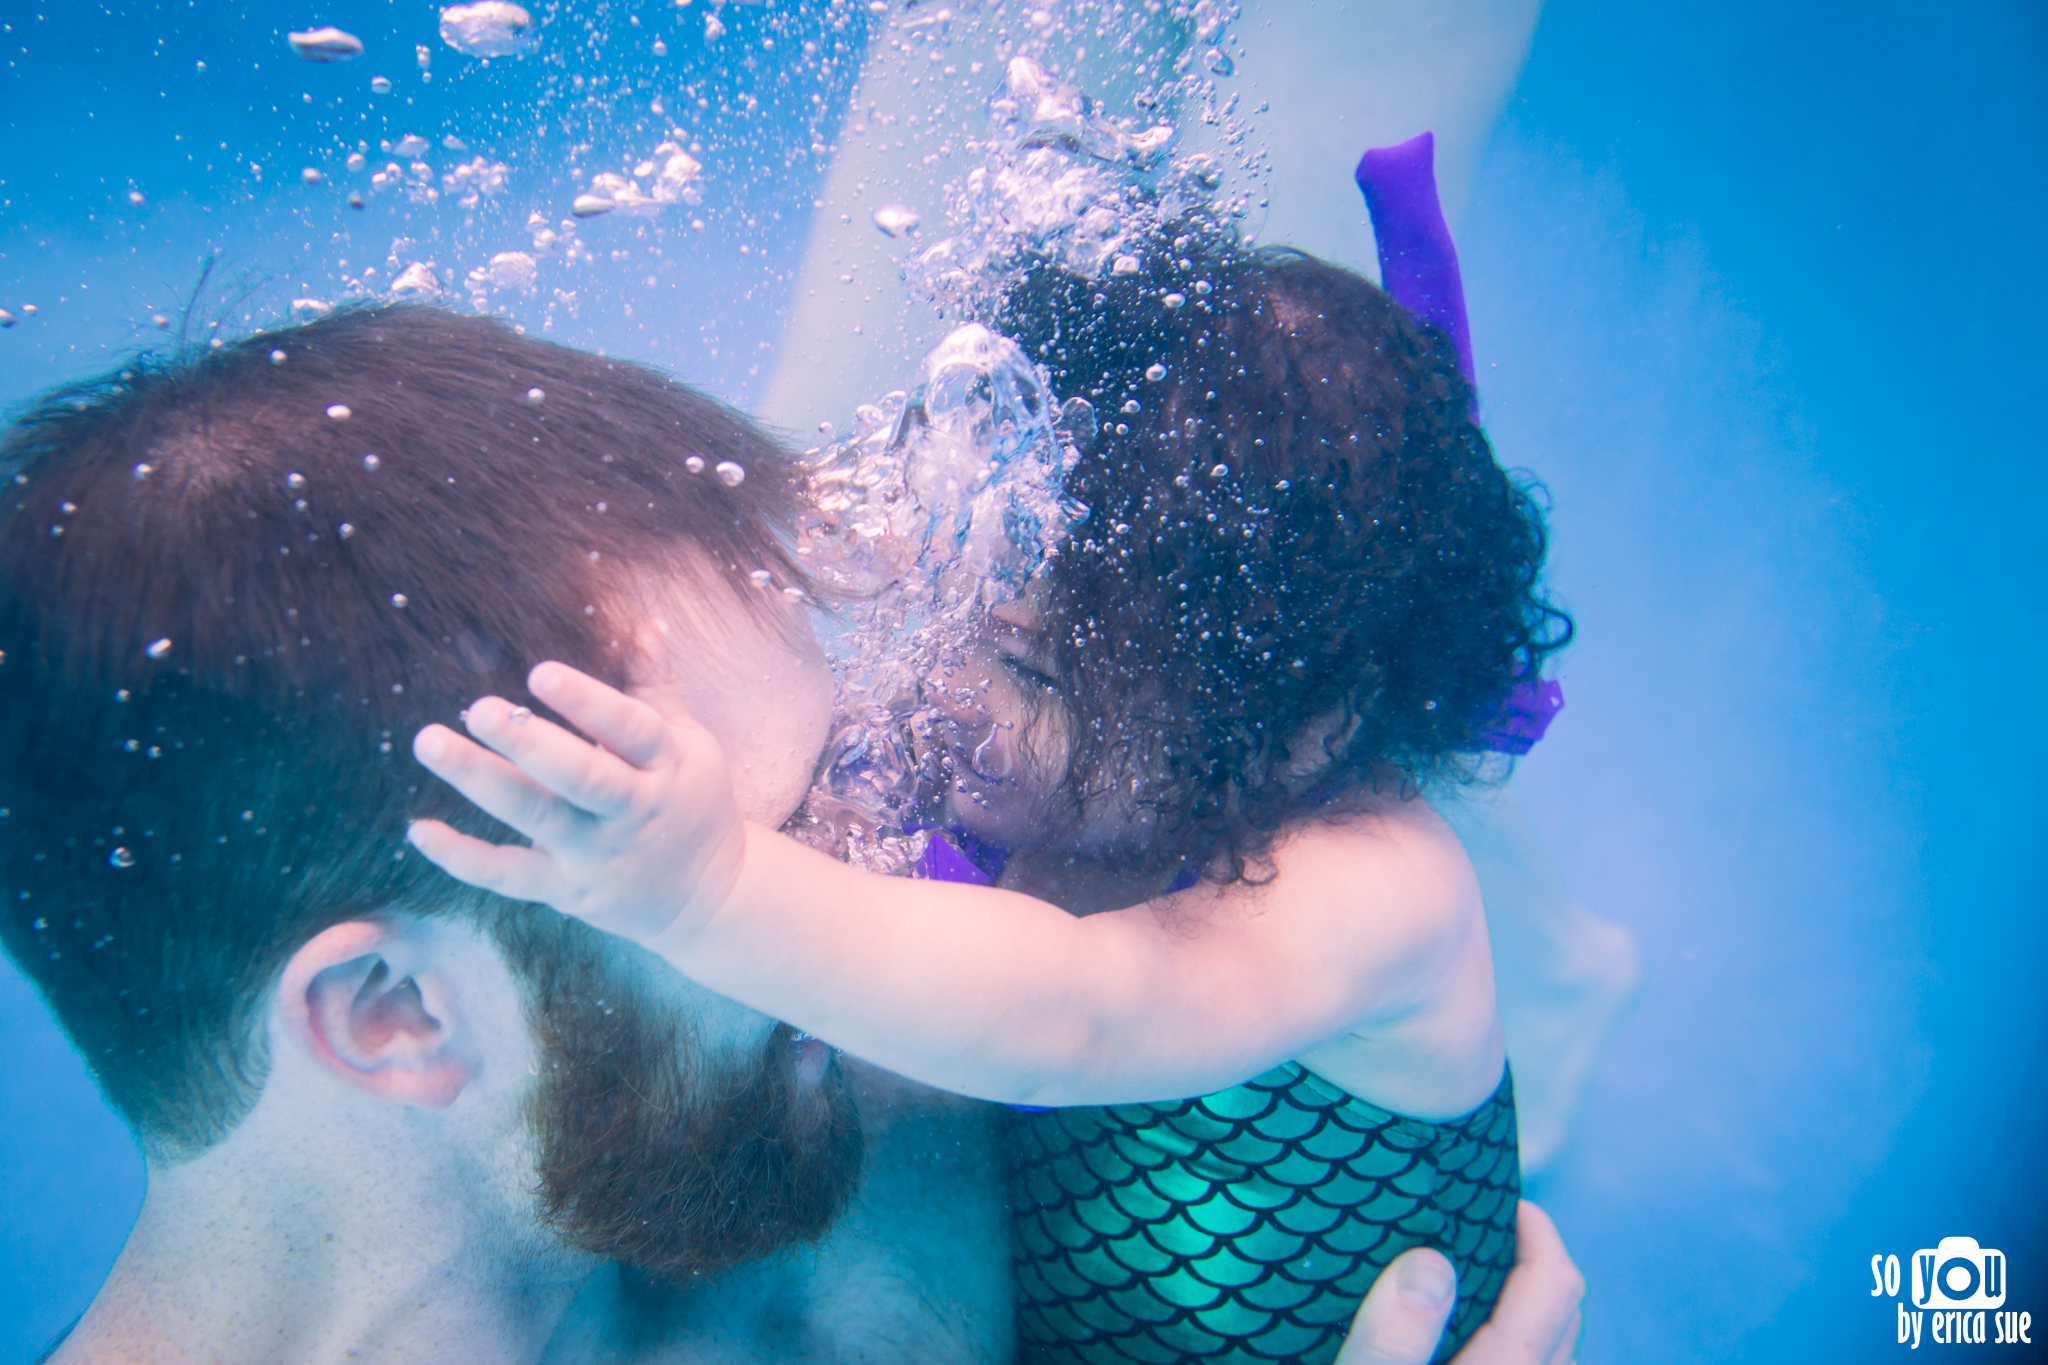 underwater-swim-family-photography-ft-lauderdale-so-you-by-erica-sue-1417.jpg